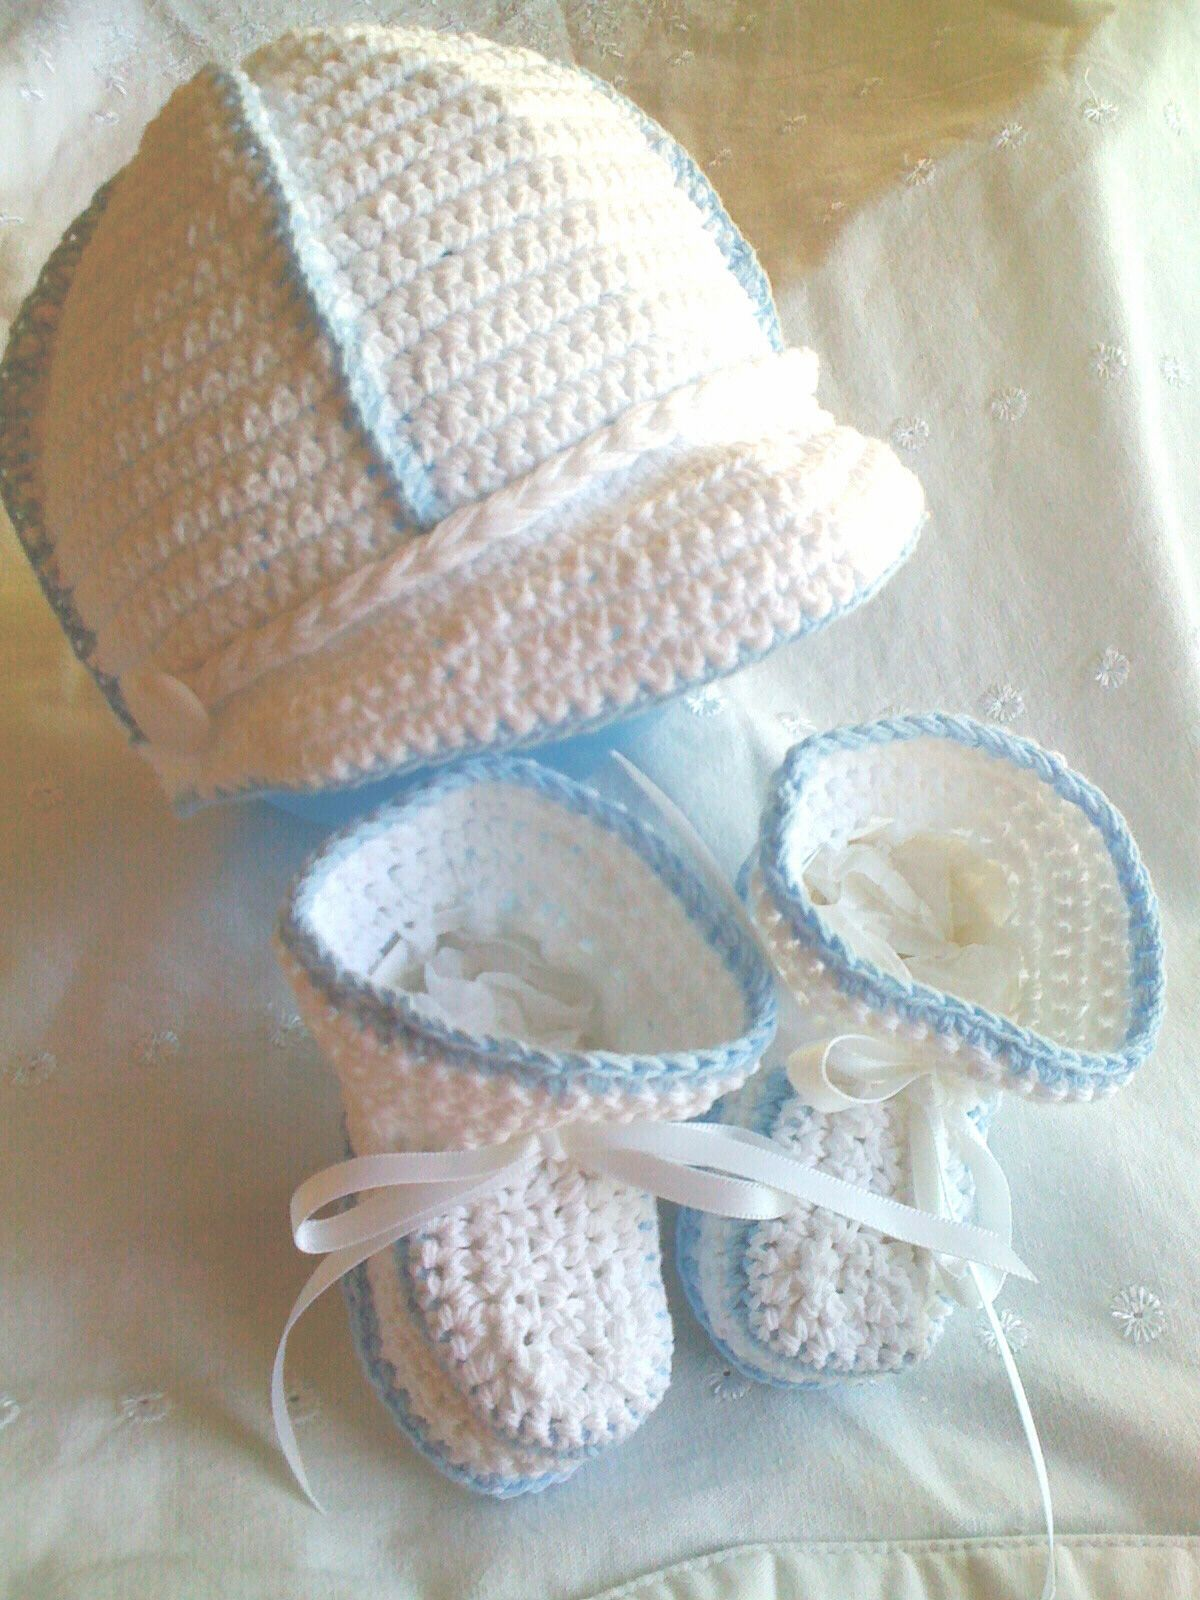 Baby Stuff On Pinterest | Crochet Baby Boy Visor Cap Hat Booties Reborn Doll - Other